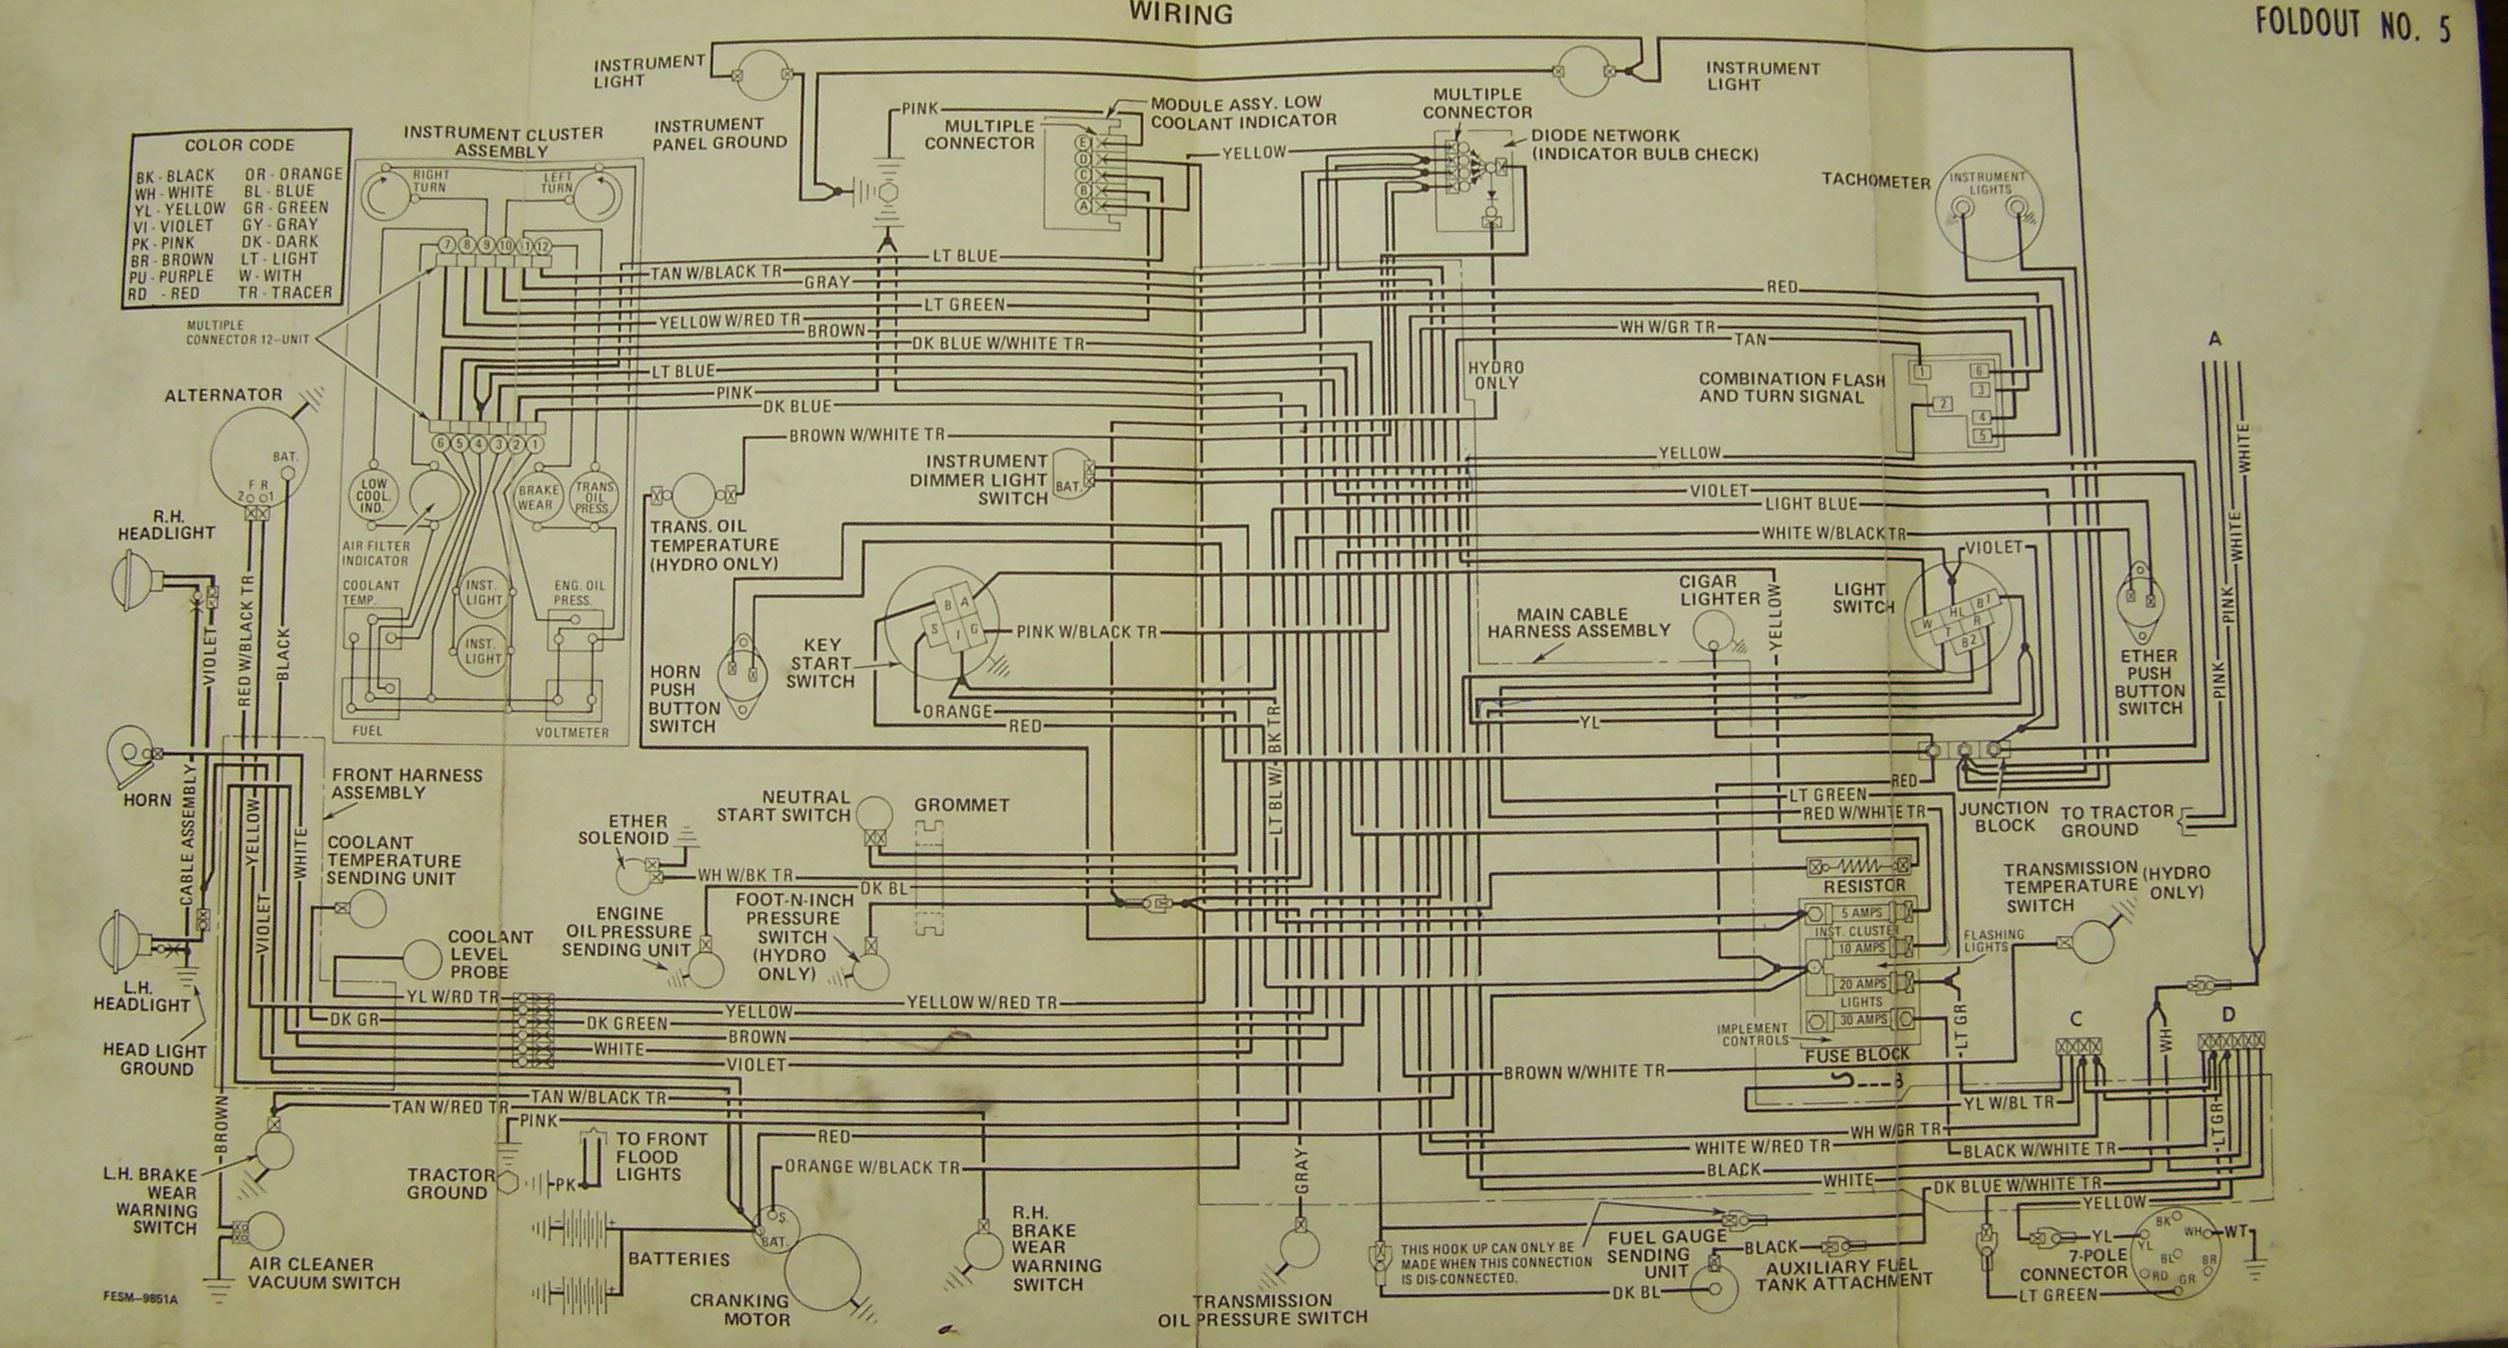 farmall rear light wiring diagram carter & gruenewald co. inc. - ih-farmall tractor ... farmall 460 light wiring diagram #5